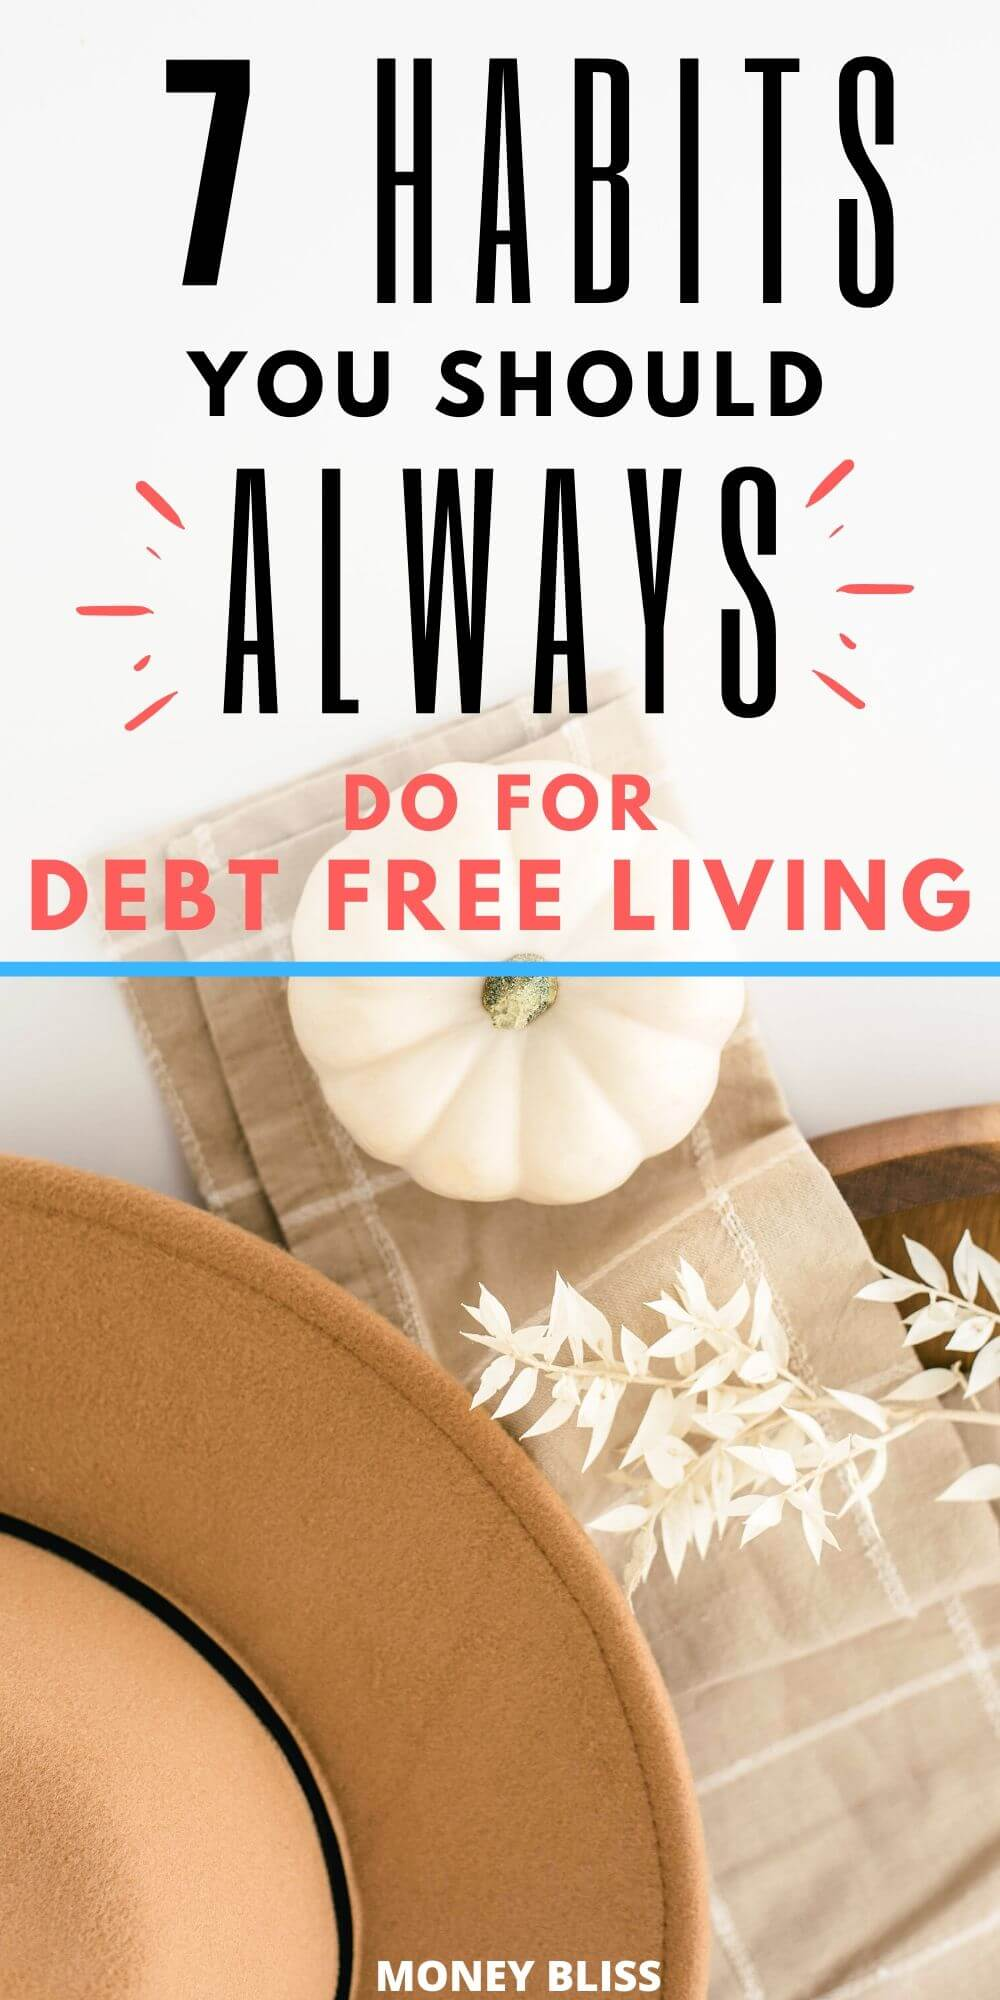 What does being debt free feel like? Read this post like I did. It was life changing and the debt free living habits were easy and simple ideas to implement. Now, I have found more ways to save money and have plans to pay off my debt in 6 months. You can pay off credit card debt quickly too! | Money Bliss